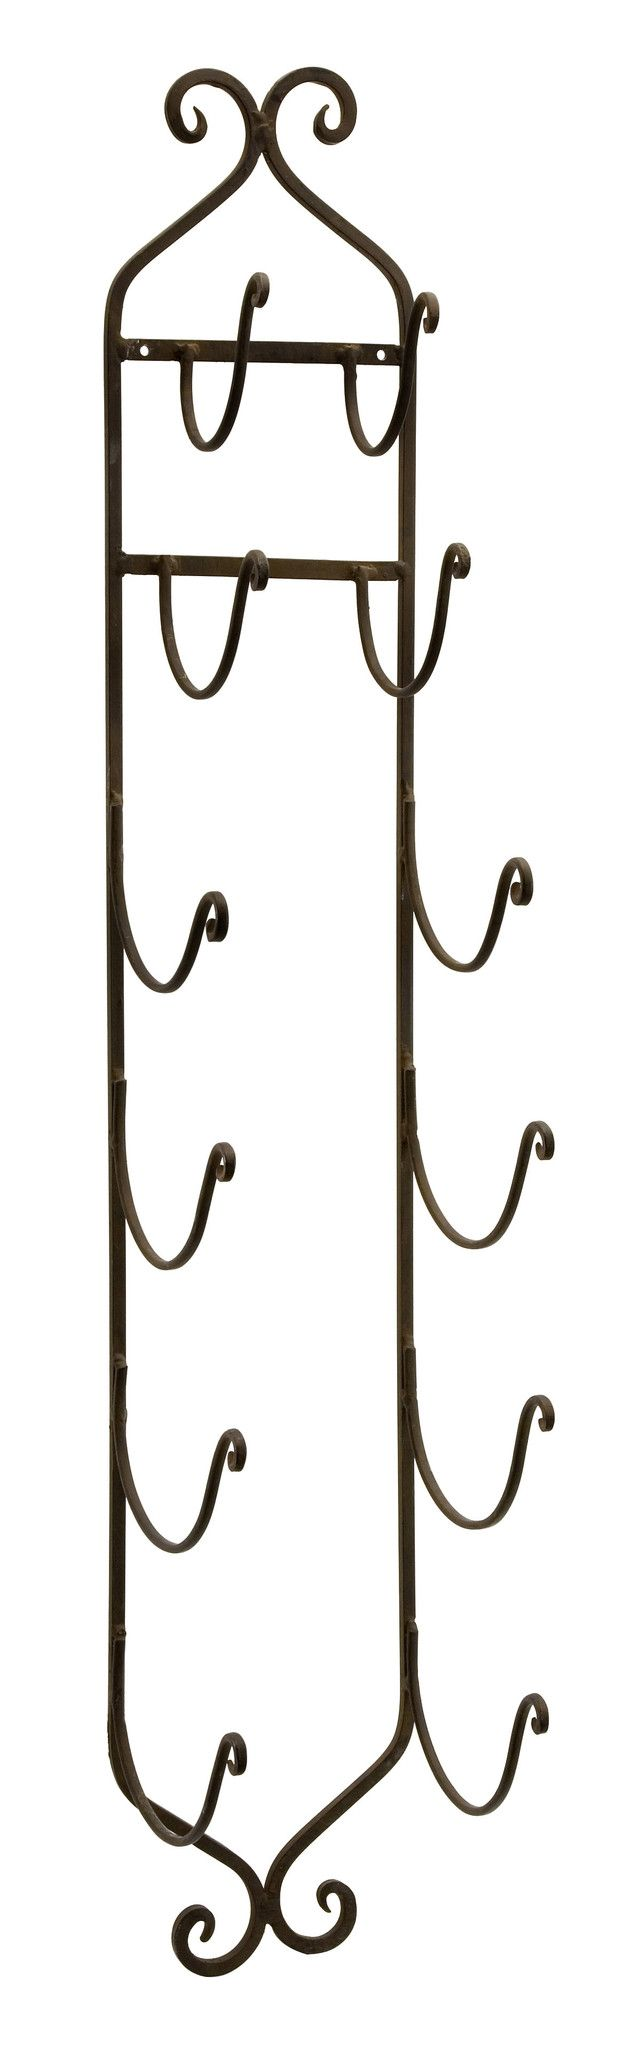 Grab one of our best sellers while you can! This rustic wine/towel rack, available in brown or white, is made out of sturdy wrought iron and is a practical and stylish addition to any space. Shop here: http://mafurn.com/a/KrjIcIhU